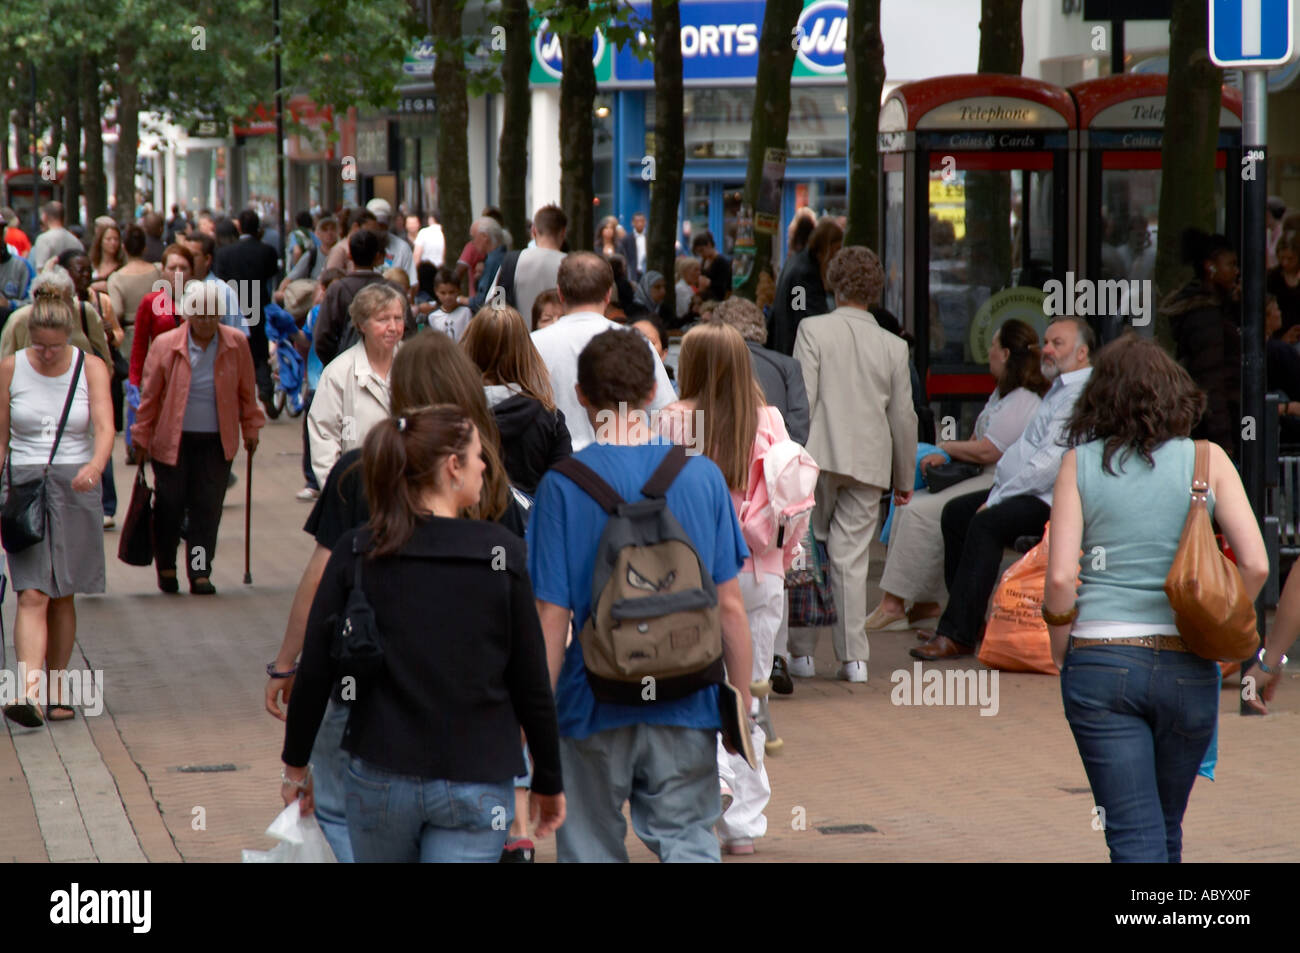 high street sales retail retailing retailer shop shopping shoppers price index economy economic sell sale sales disposable incom - Stock Image